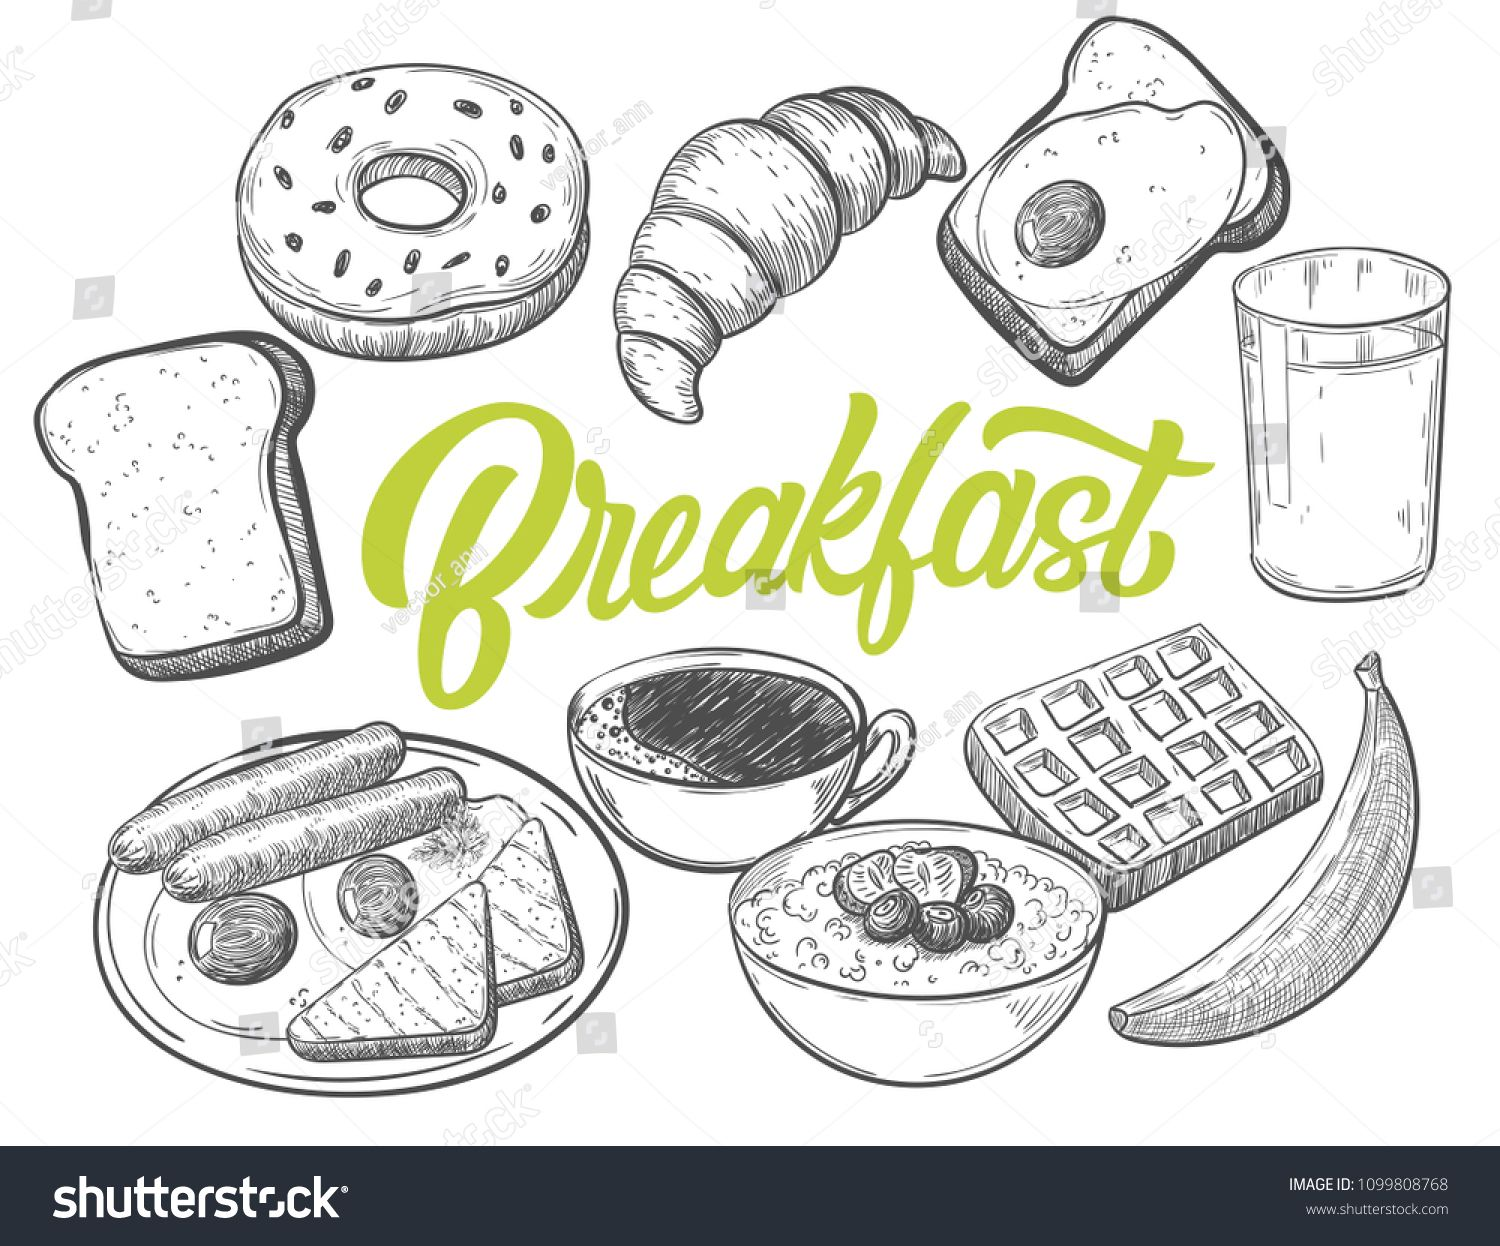 Hand Drawn Breakfast Food With Custom Lettering Black And White Draft Sketch Isolated On White Background Vintage V Lettering Ink Illustrations Cookie Vector